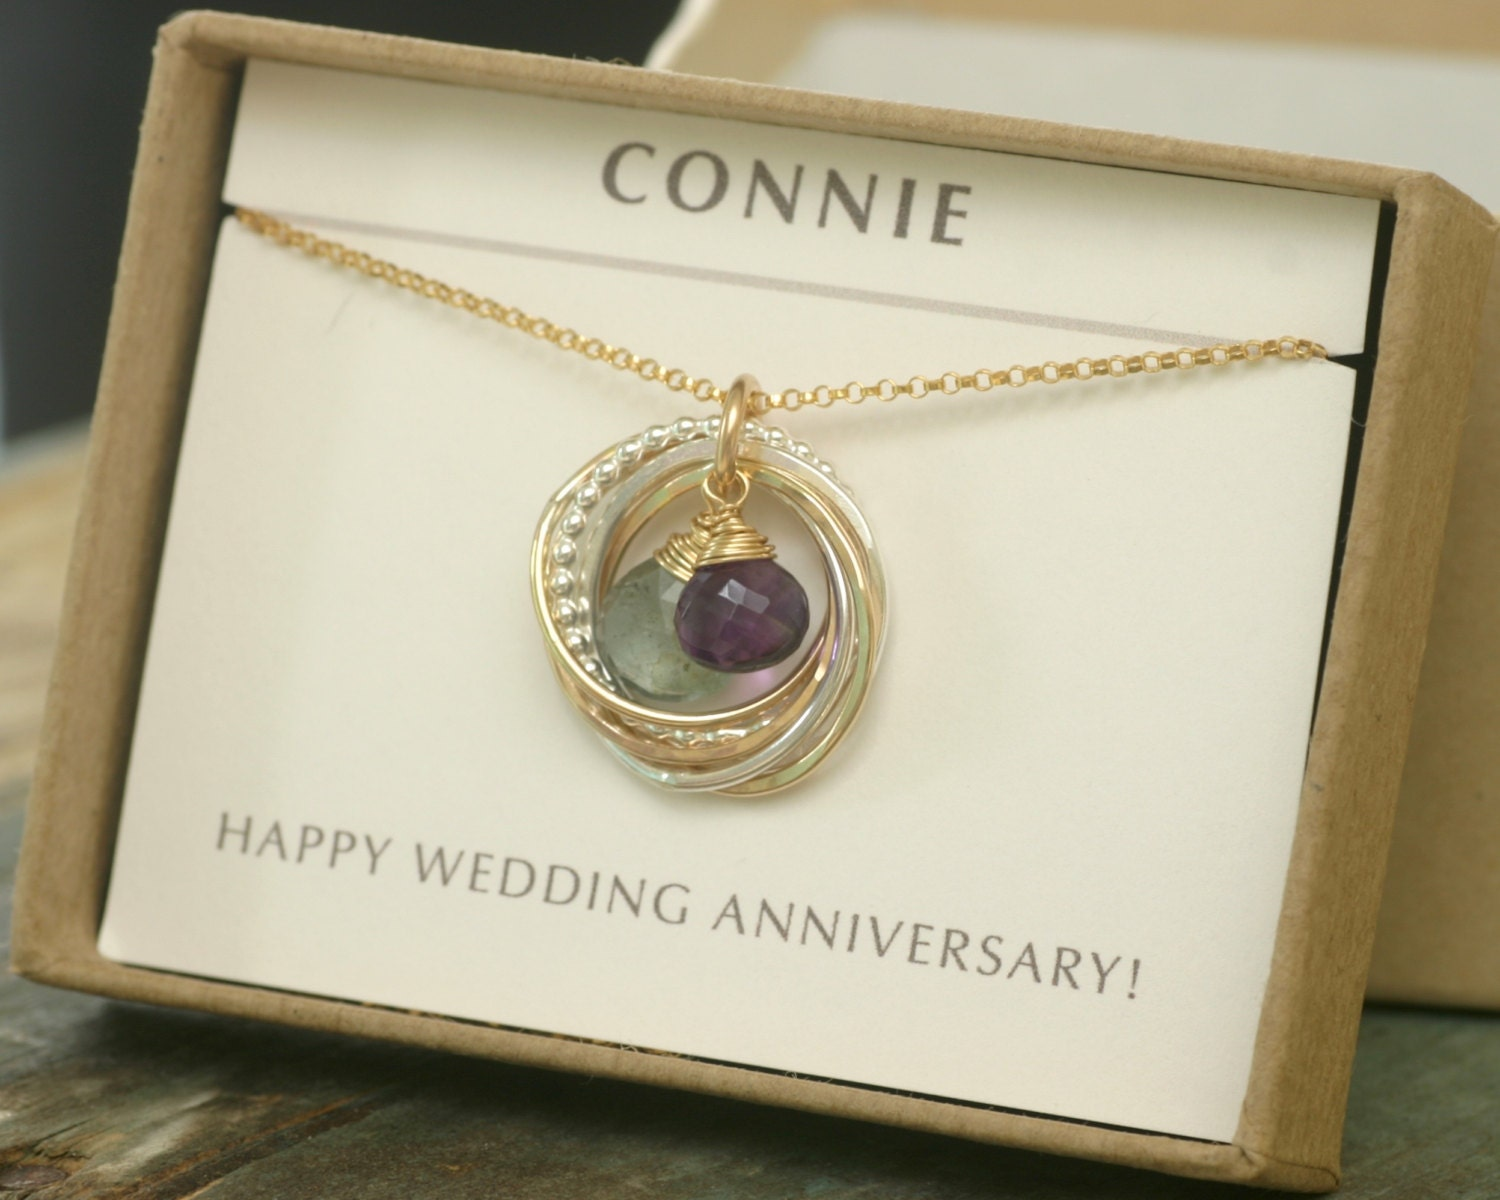 Wedding Anniversary Gifts 6 Years: 6 Year Anniversary Gift For Her 60th Wedding Anniversary